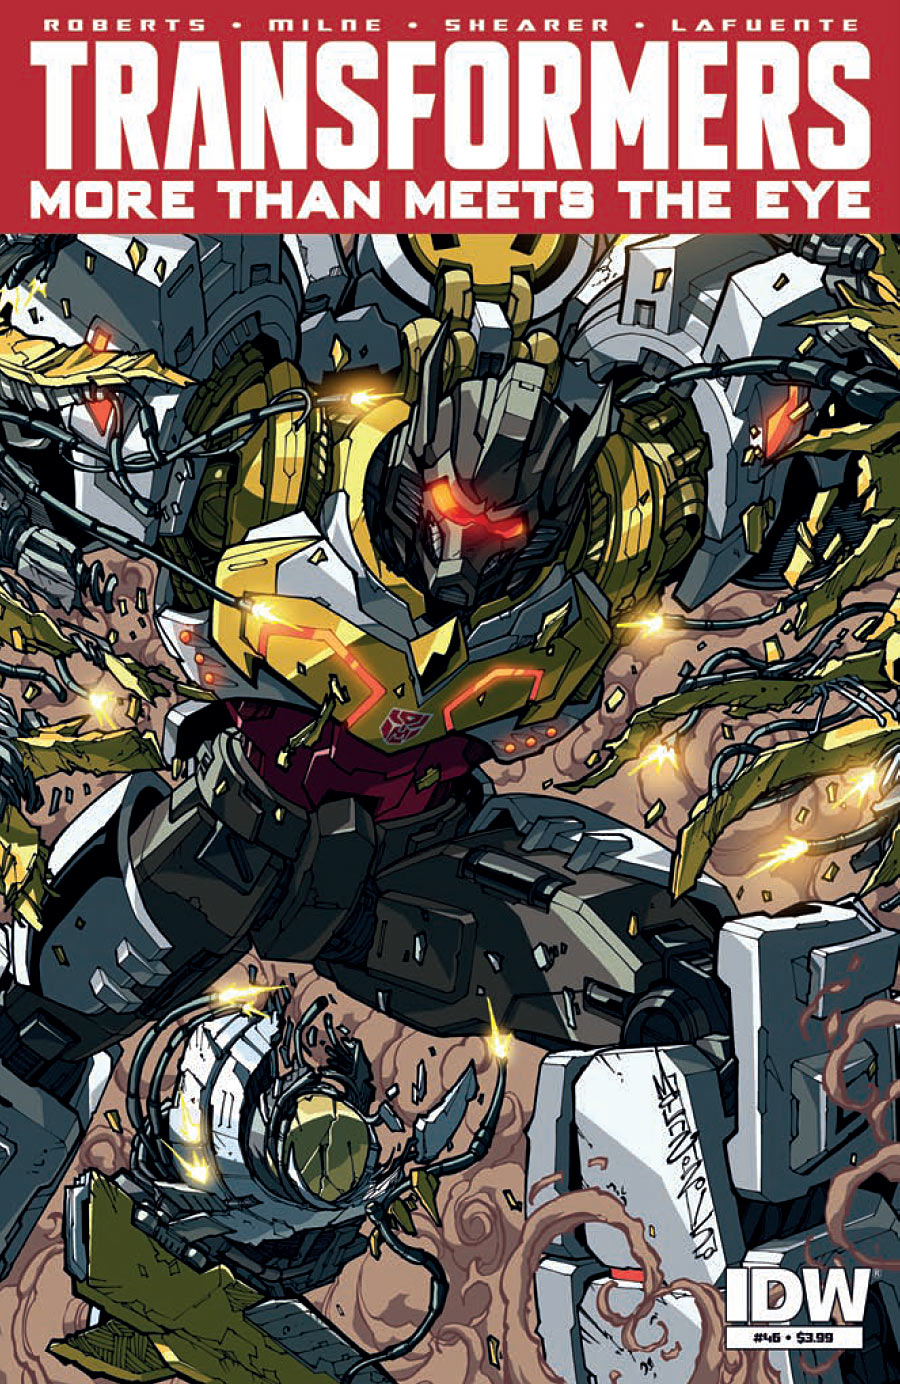 The Transformers: More than Meets the Eye #46